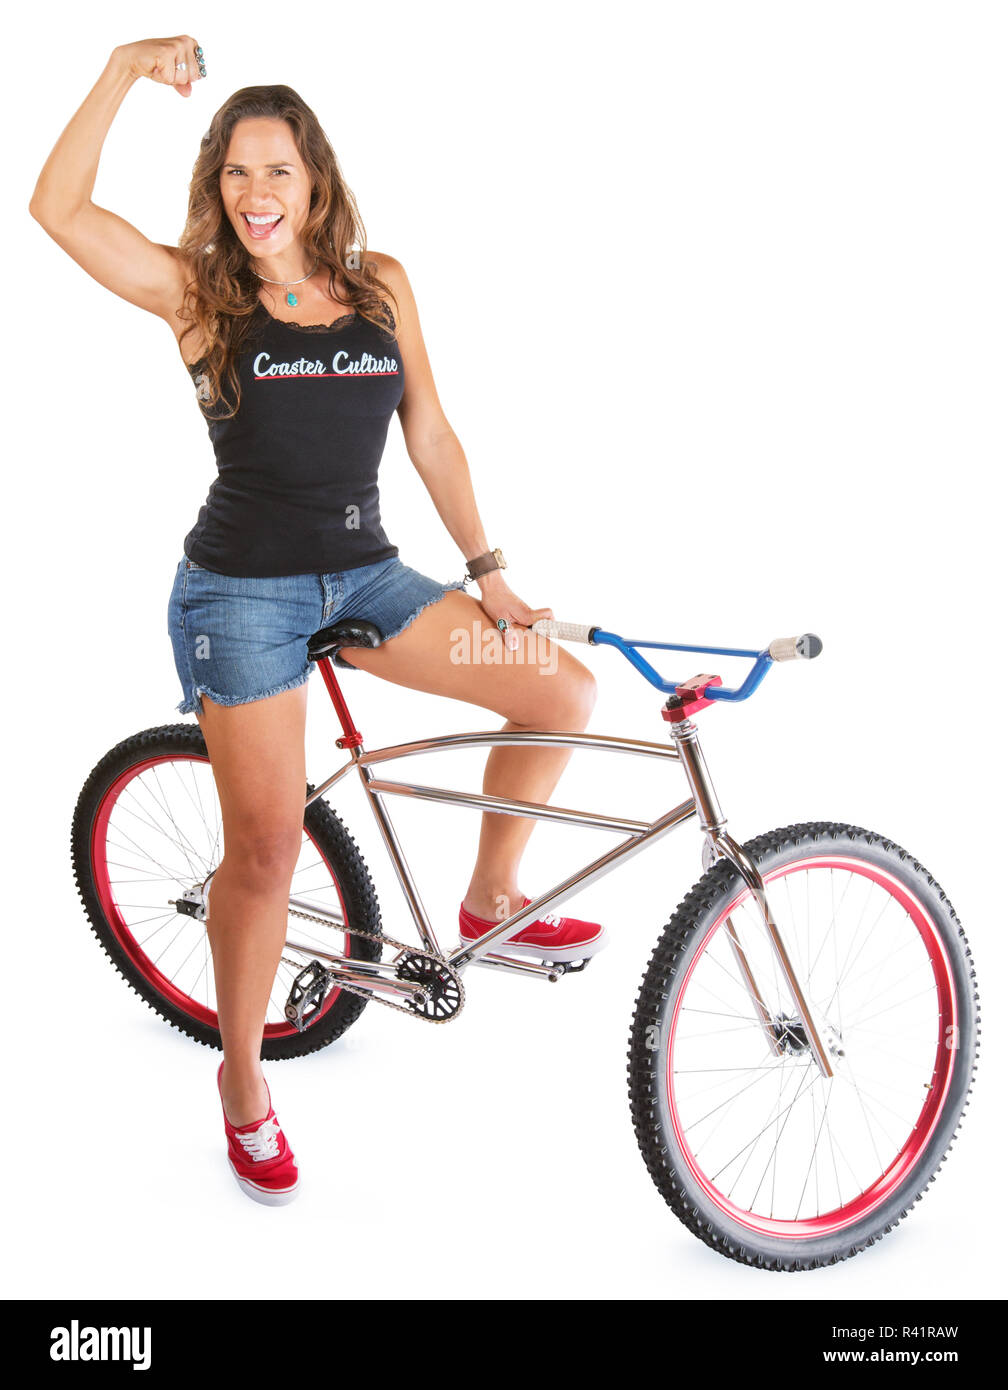 Mountain Bicyclist Flexing Muscle - Stock Image